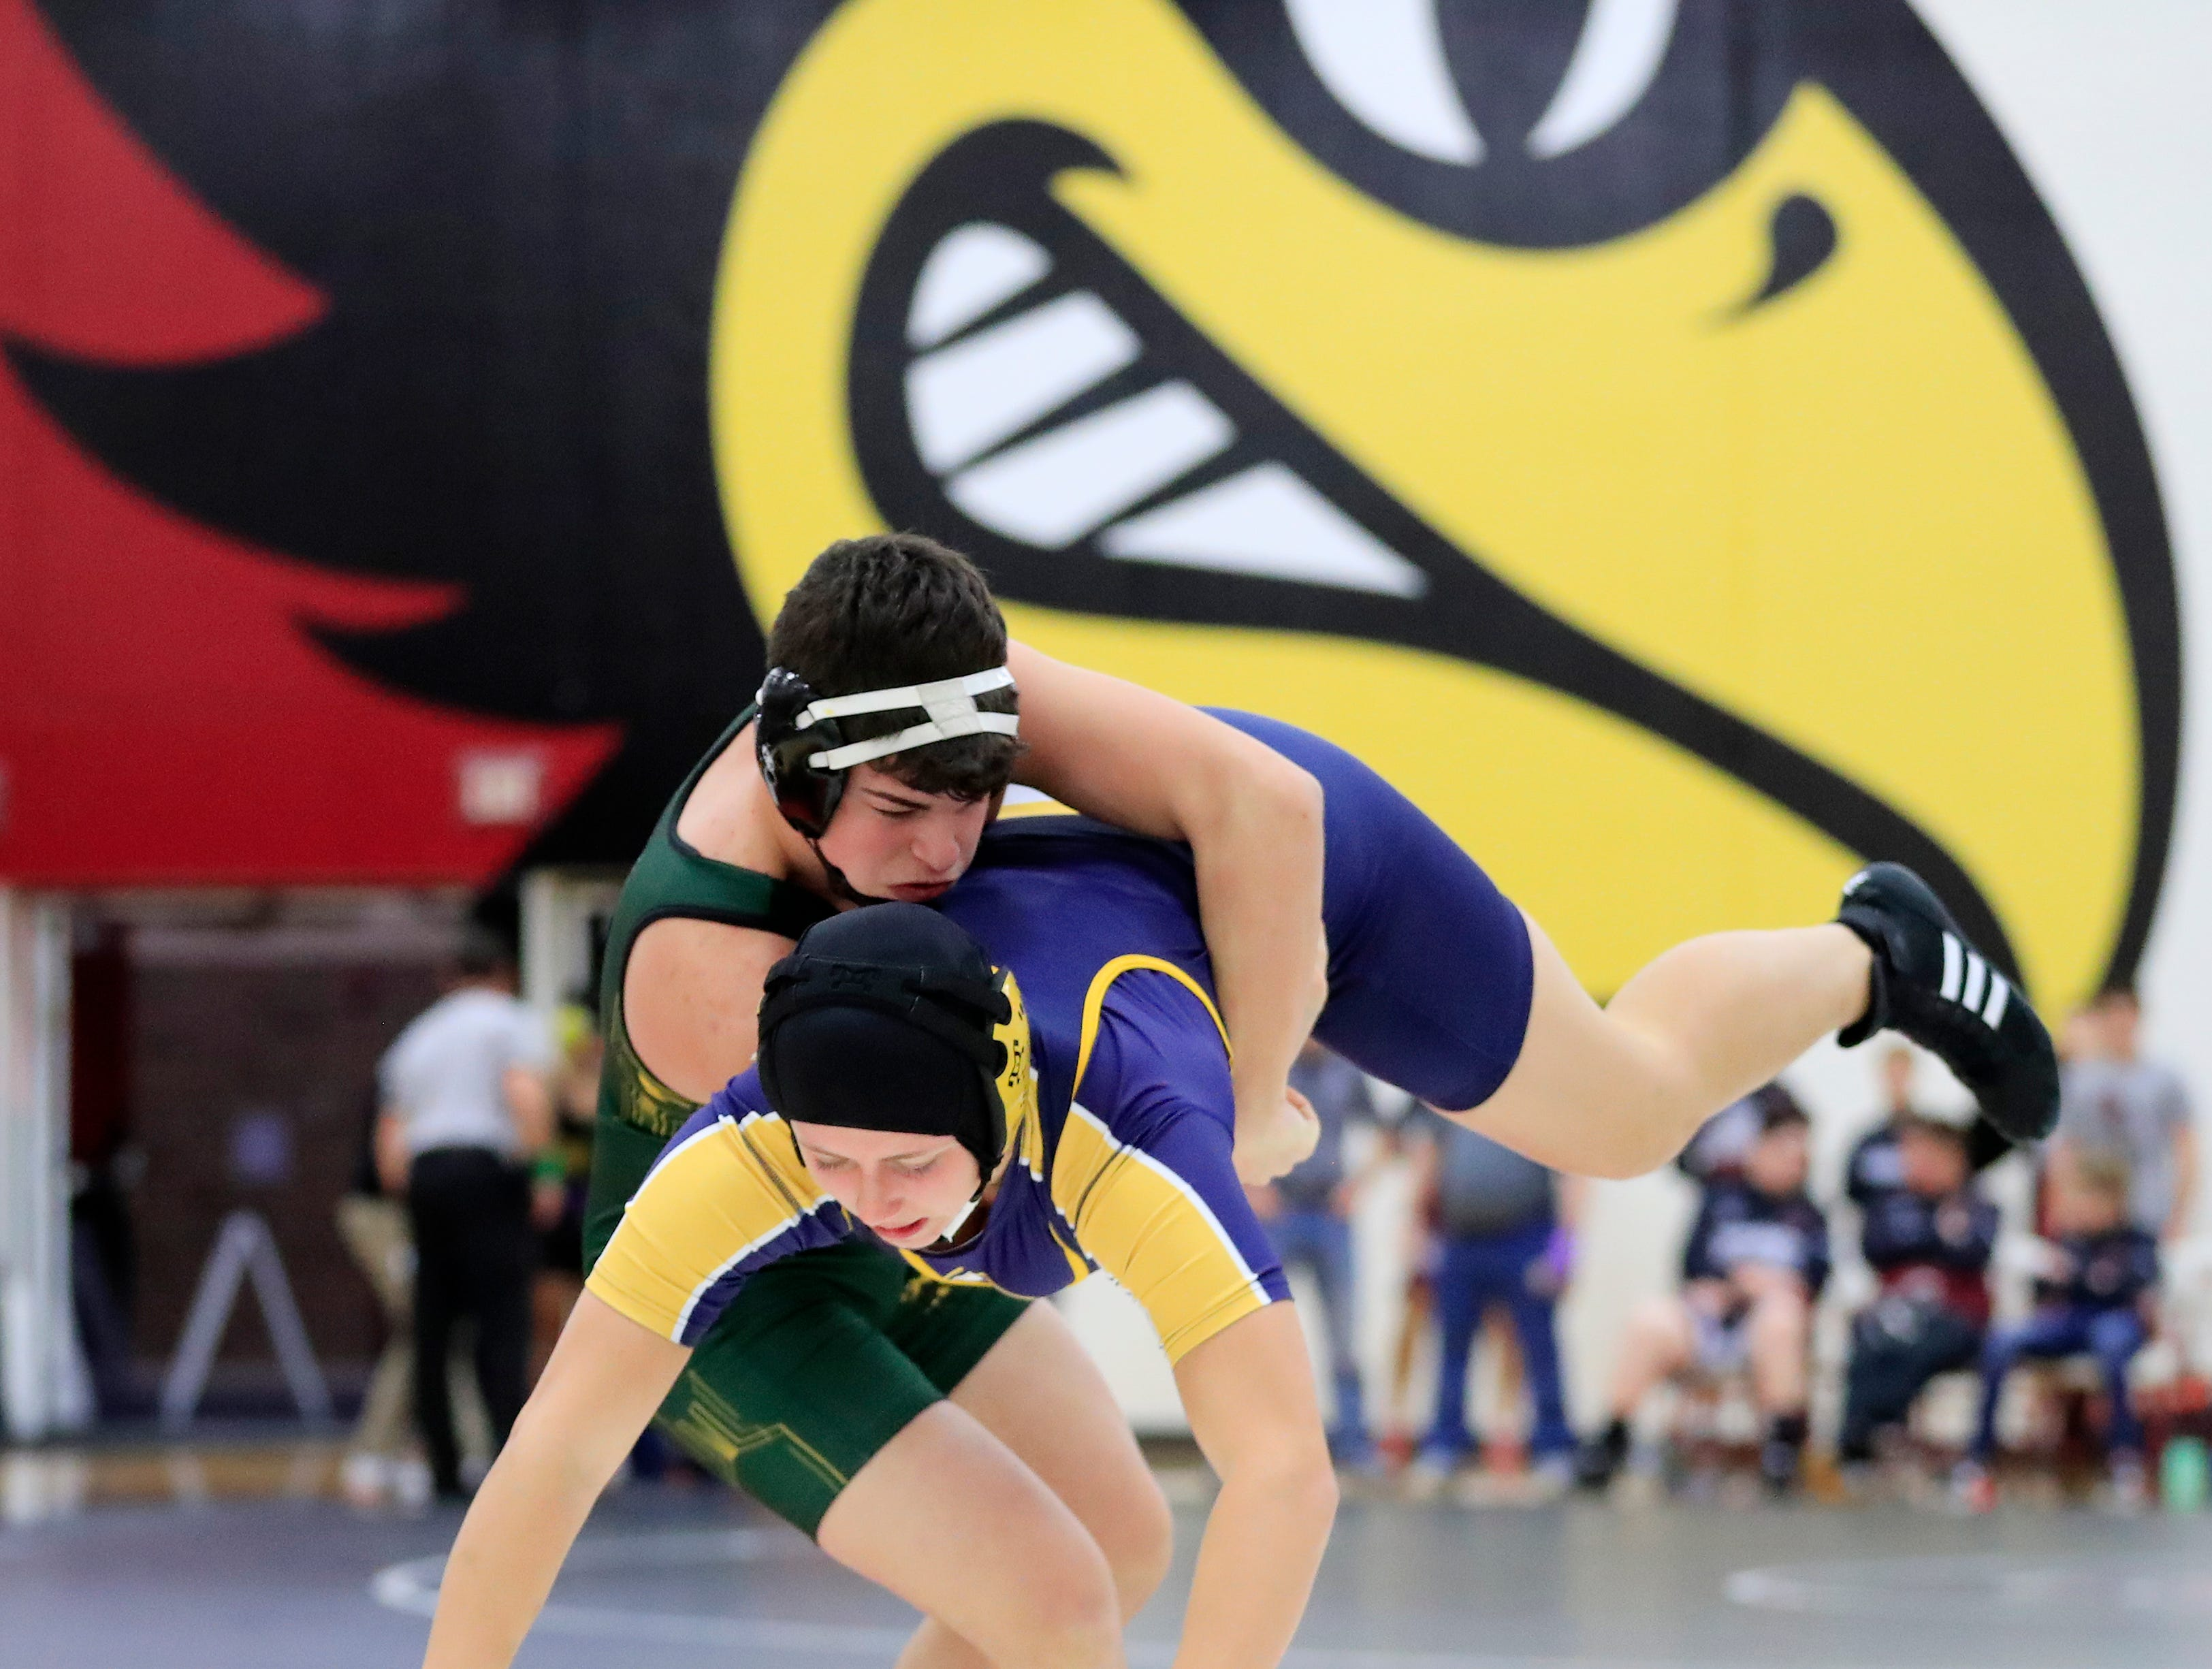 Green Bay Preble's Devin LaPlante takes down Sheboygan North's Emily Kramp in a 170-pound bout at De Pere high school on Thursday, December 13, 2018 in De Pere, Wis.